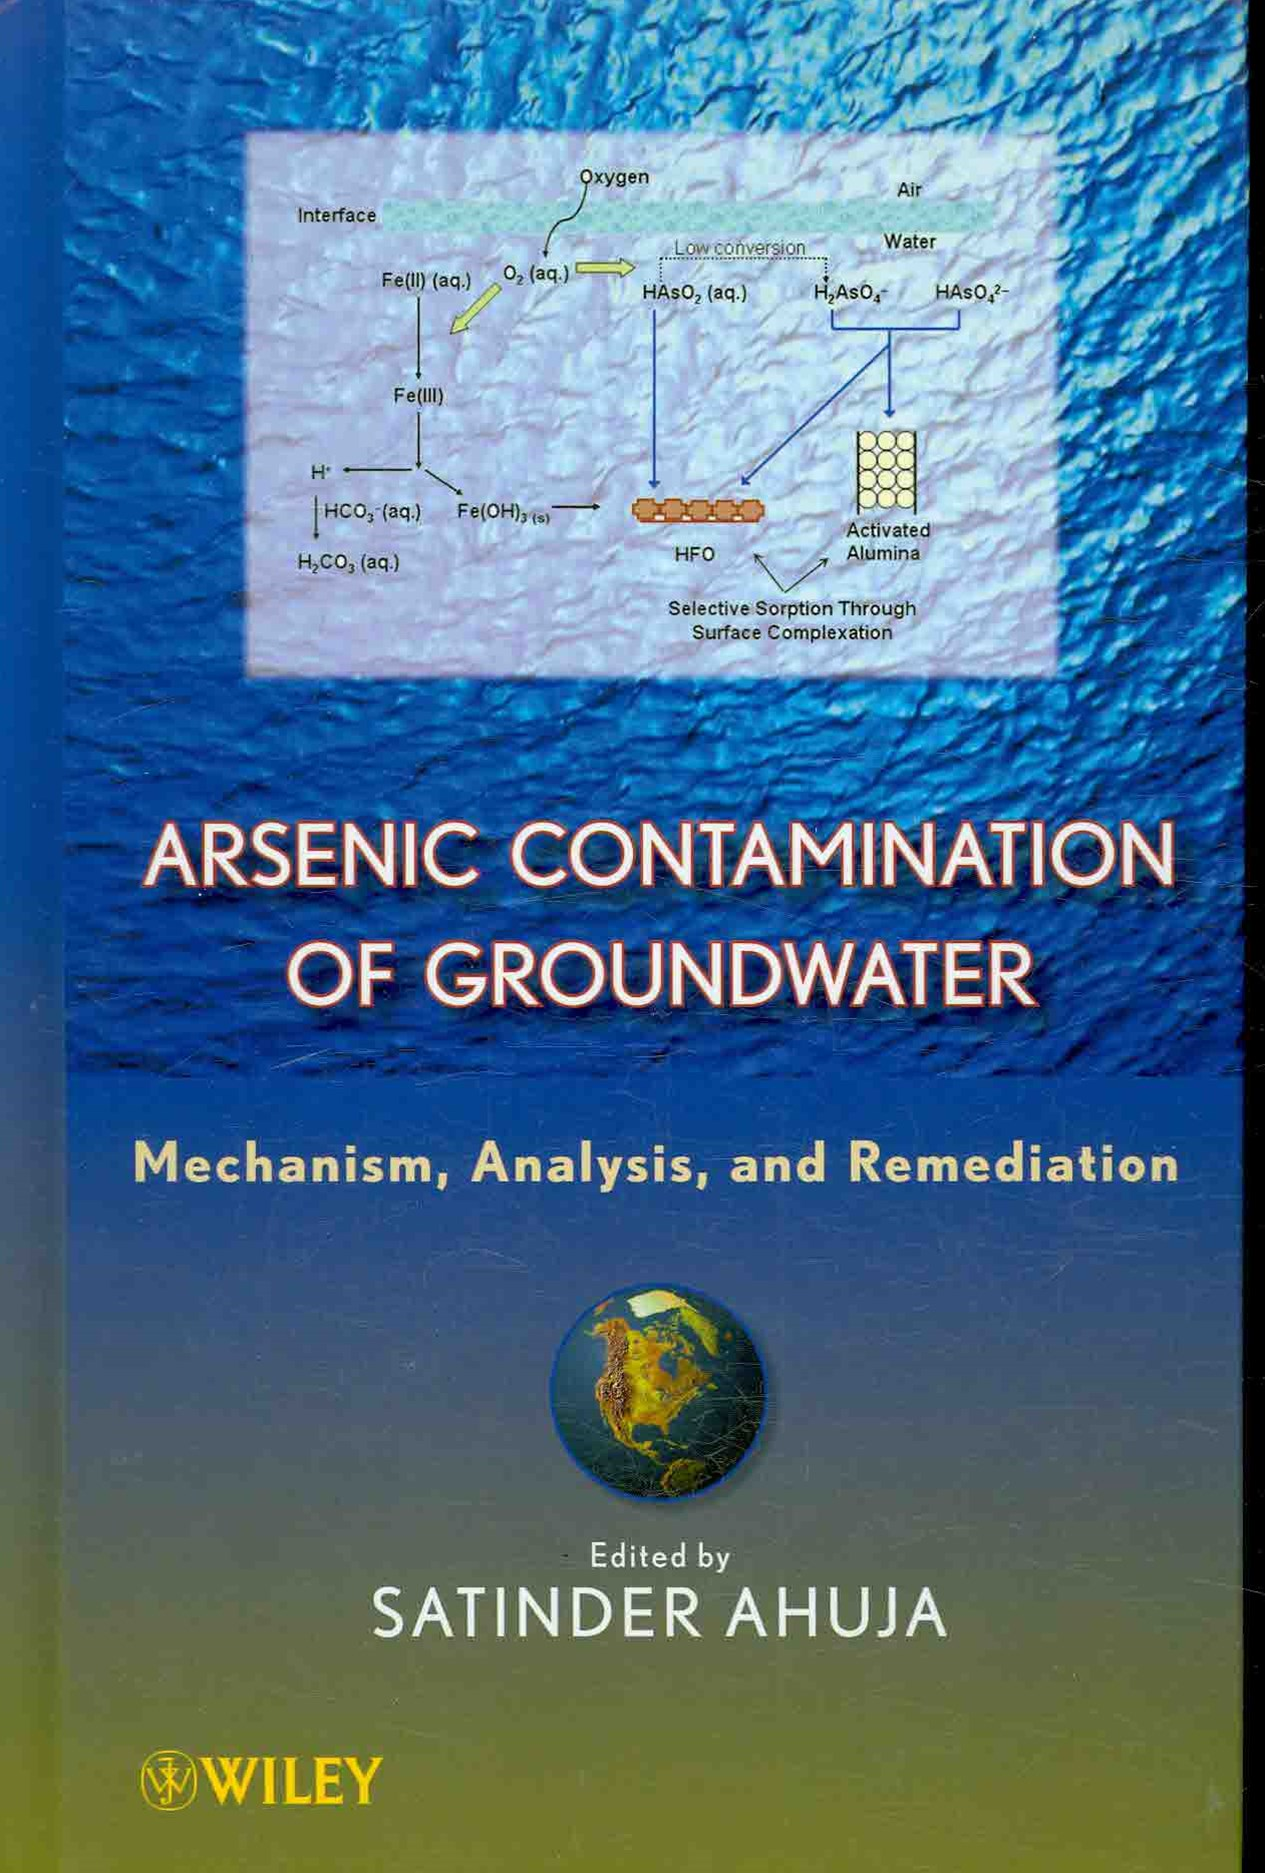 Arsenic Contamination of Groundwater